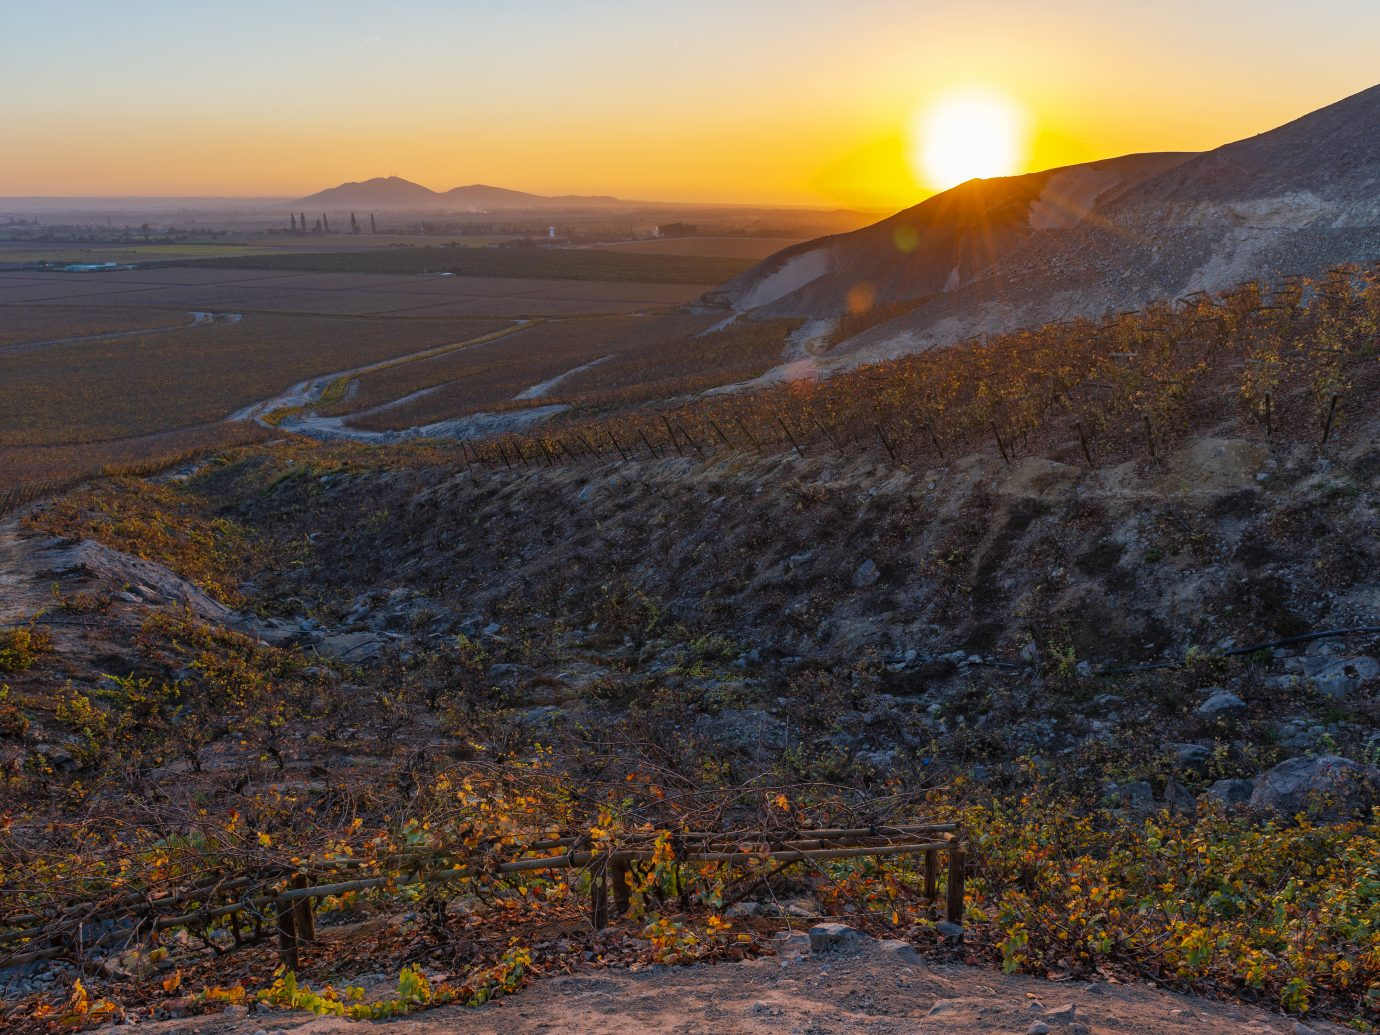 Sunset with lens flare in the vineyards of Ica for wine and Pisco production located in the desert by the coast of Peru, South America.